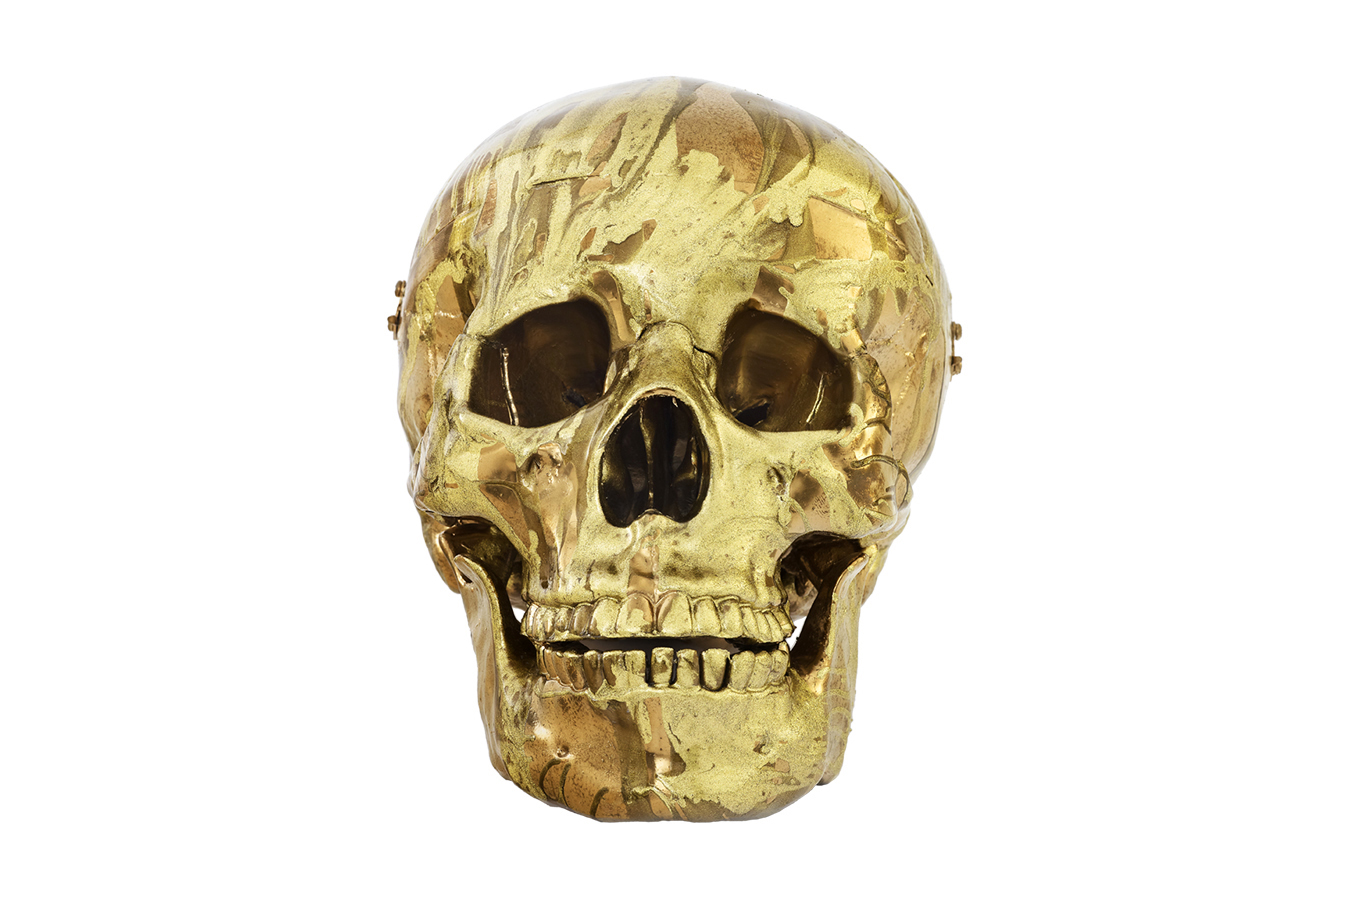 Image of Damien Hirst's 'Magnificent Head'